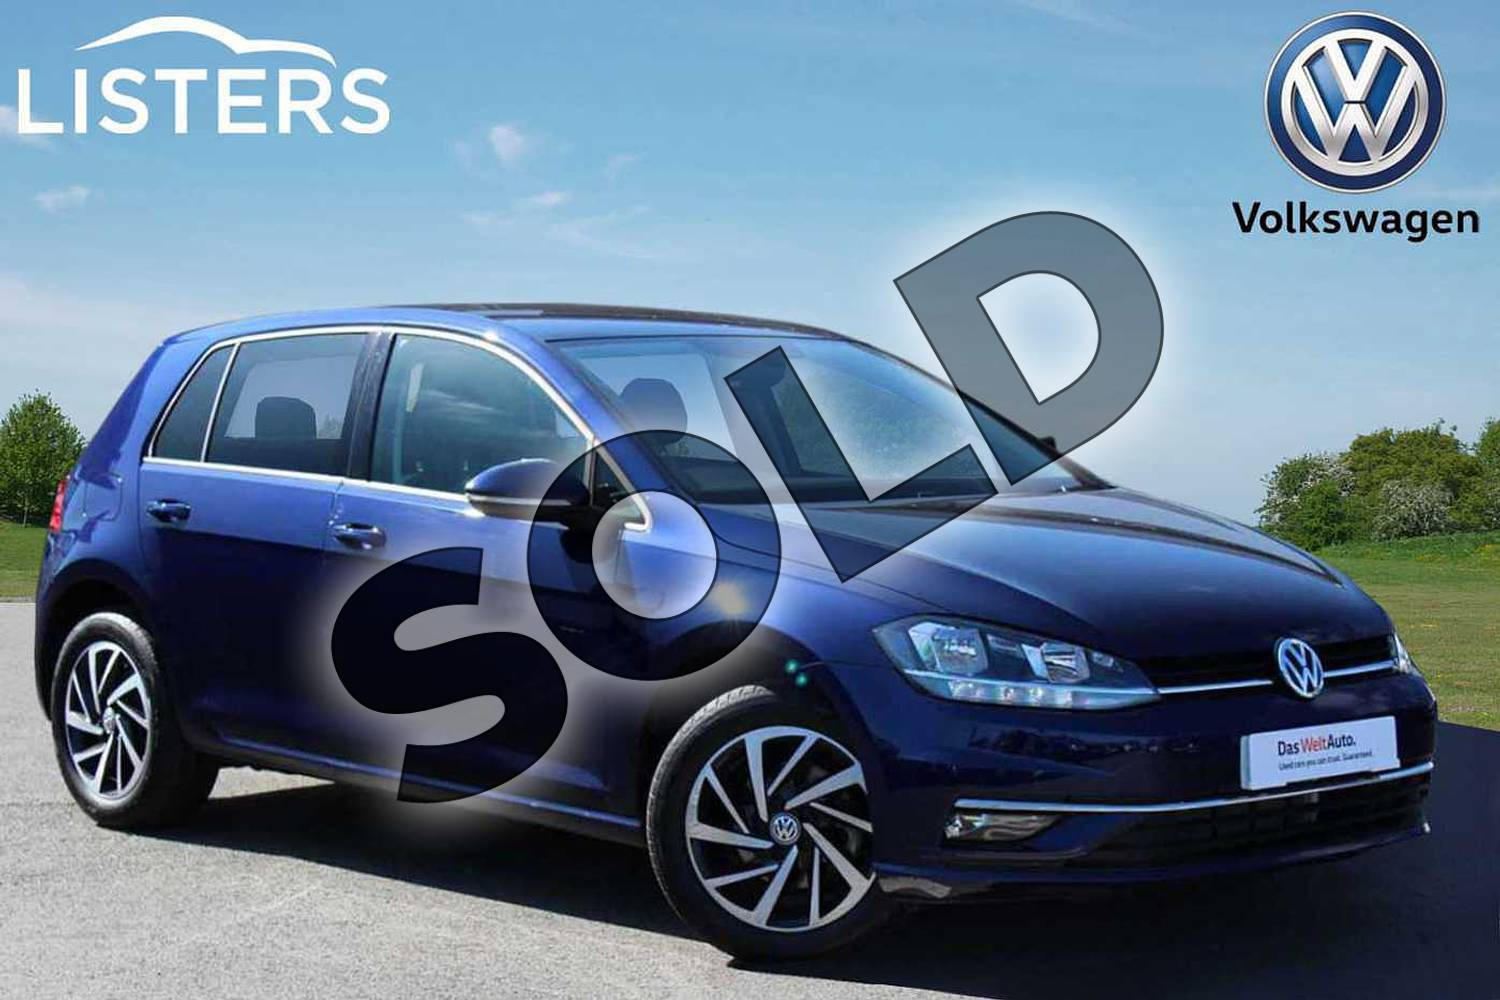 2019 Volkswagen Golf Hatchback 1.0 TSI 115 Match 5dr DSG in Atlantic Blue at Listers Volkswagen Nuneaton